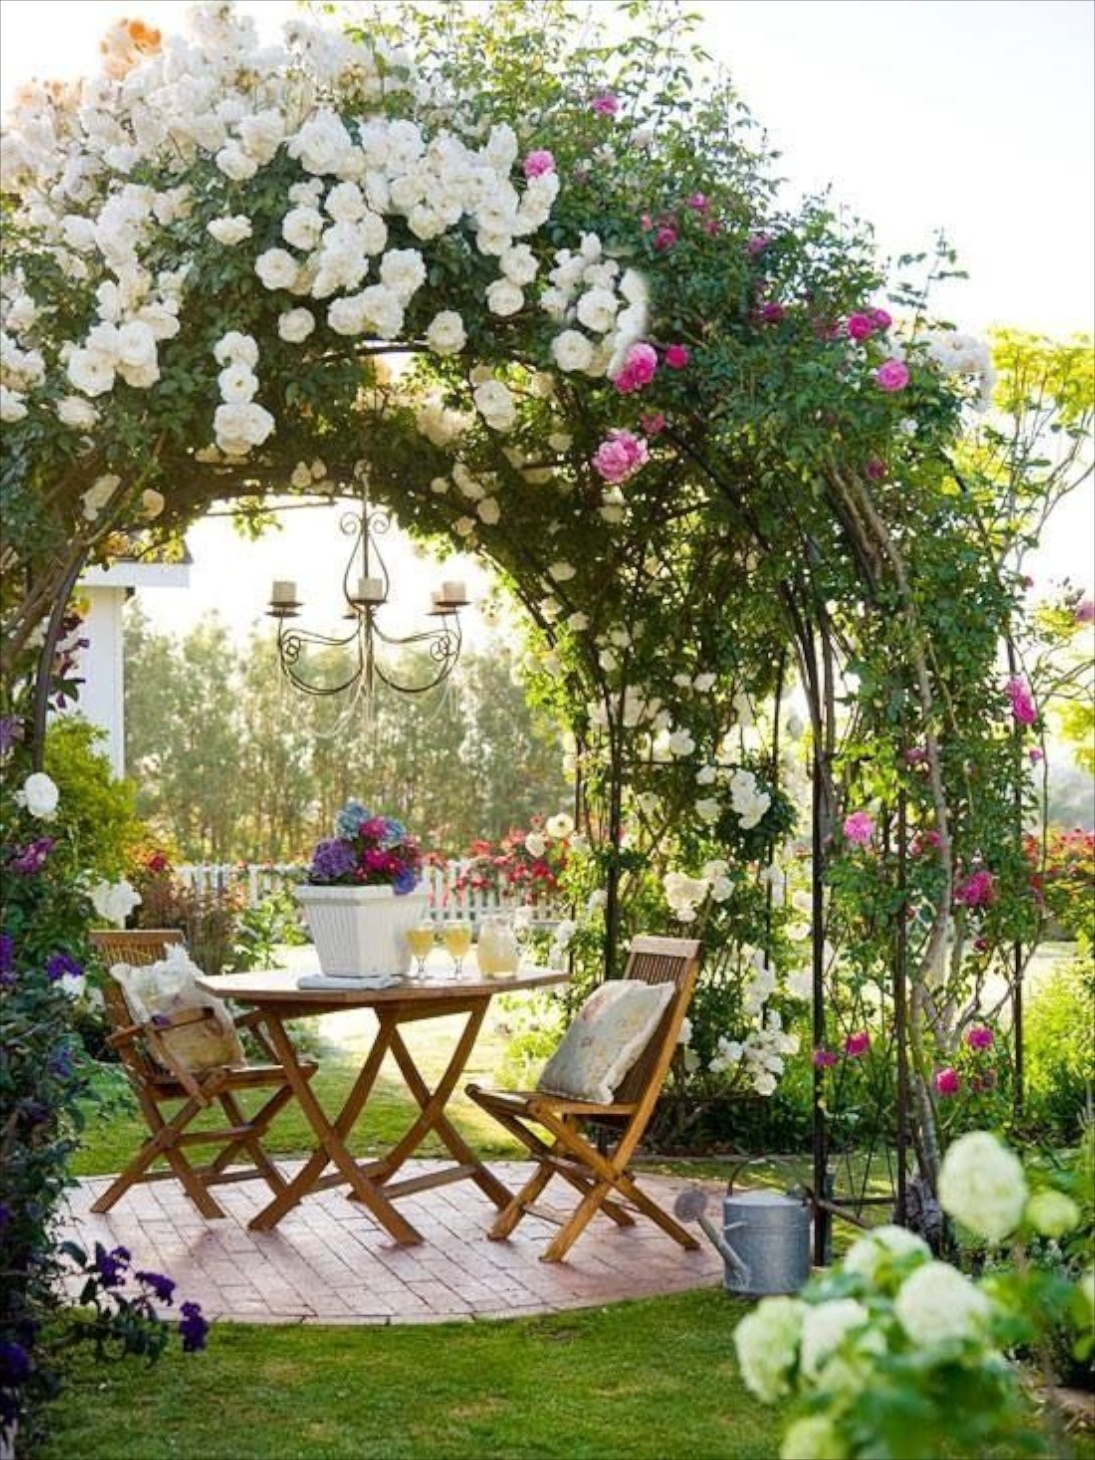 50 Best Backyard Landscaping Ideas and Designs in 2016 on Best Backyard Landscaping id=93758